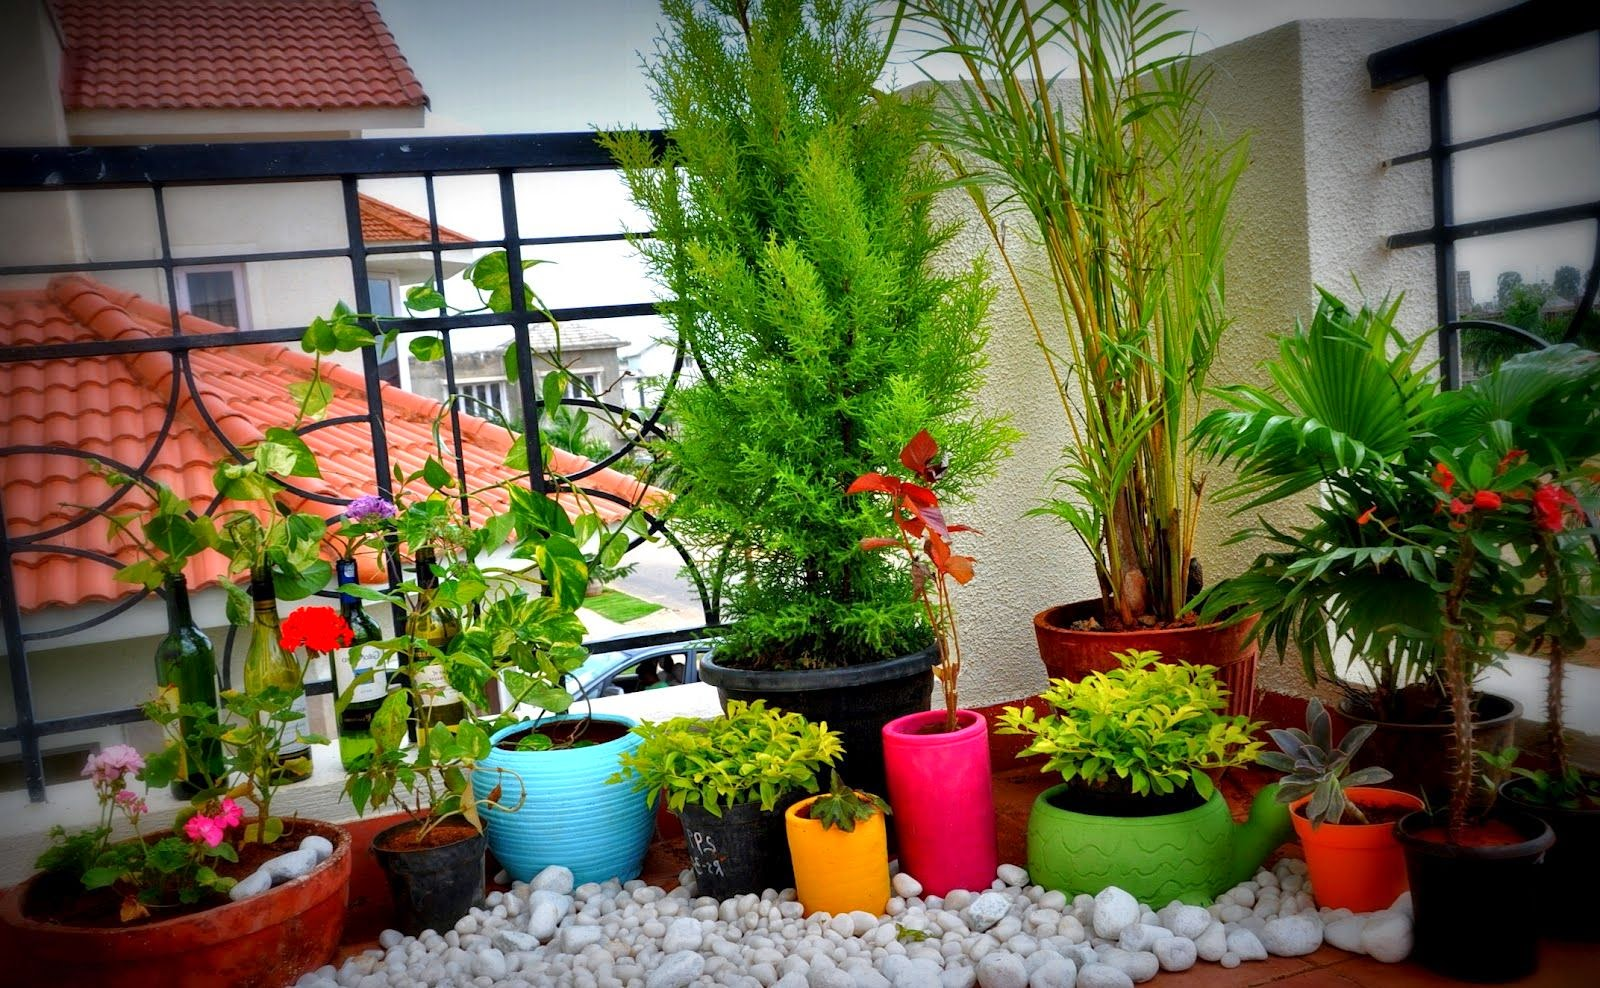 Home garden design for small spaces for Home design with garden